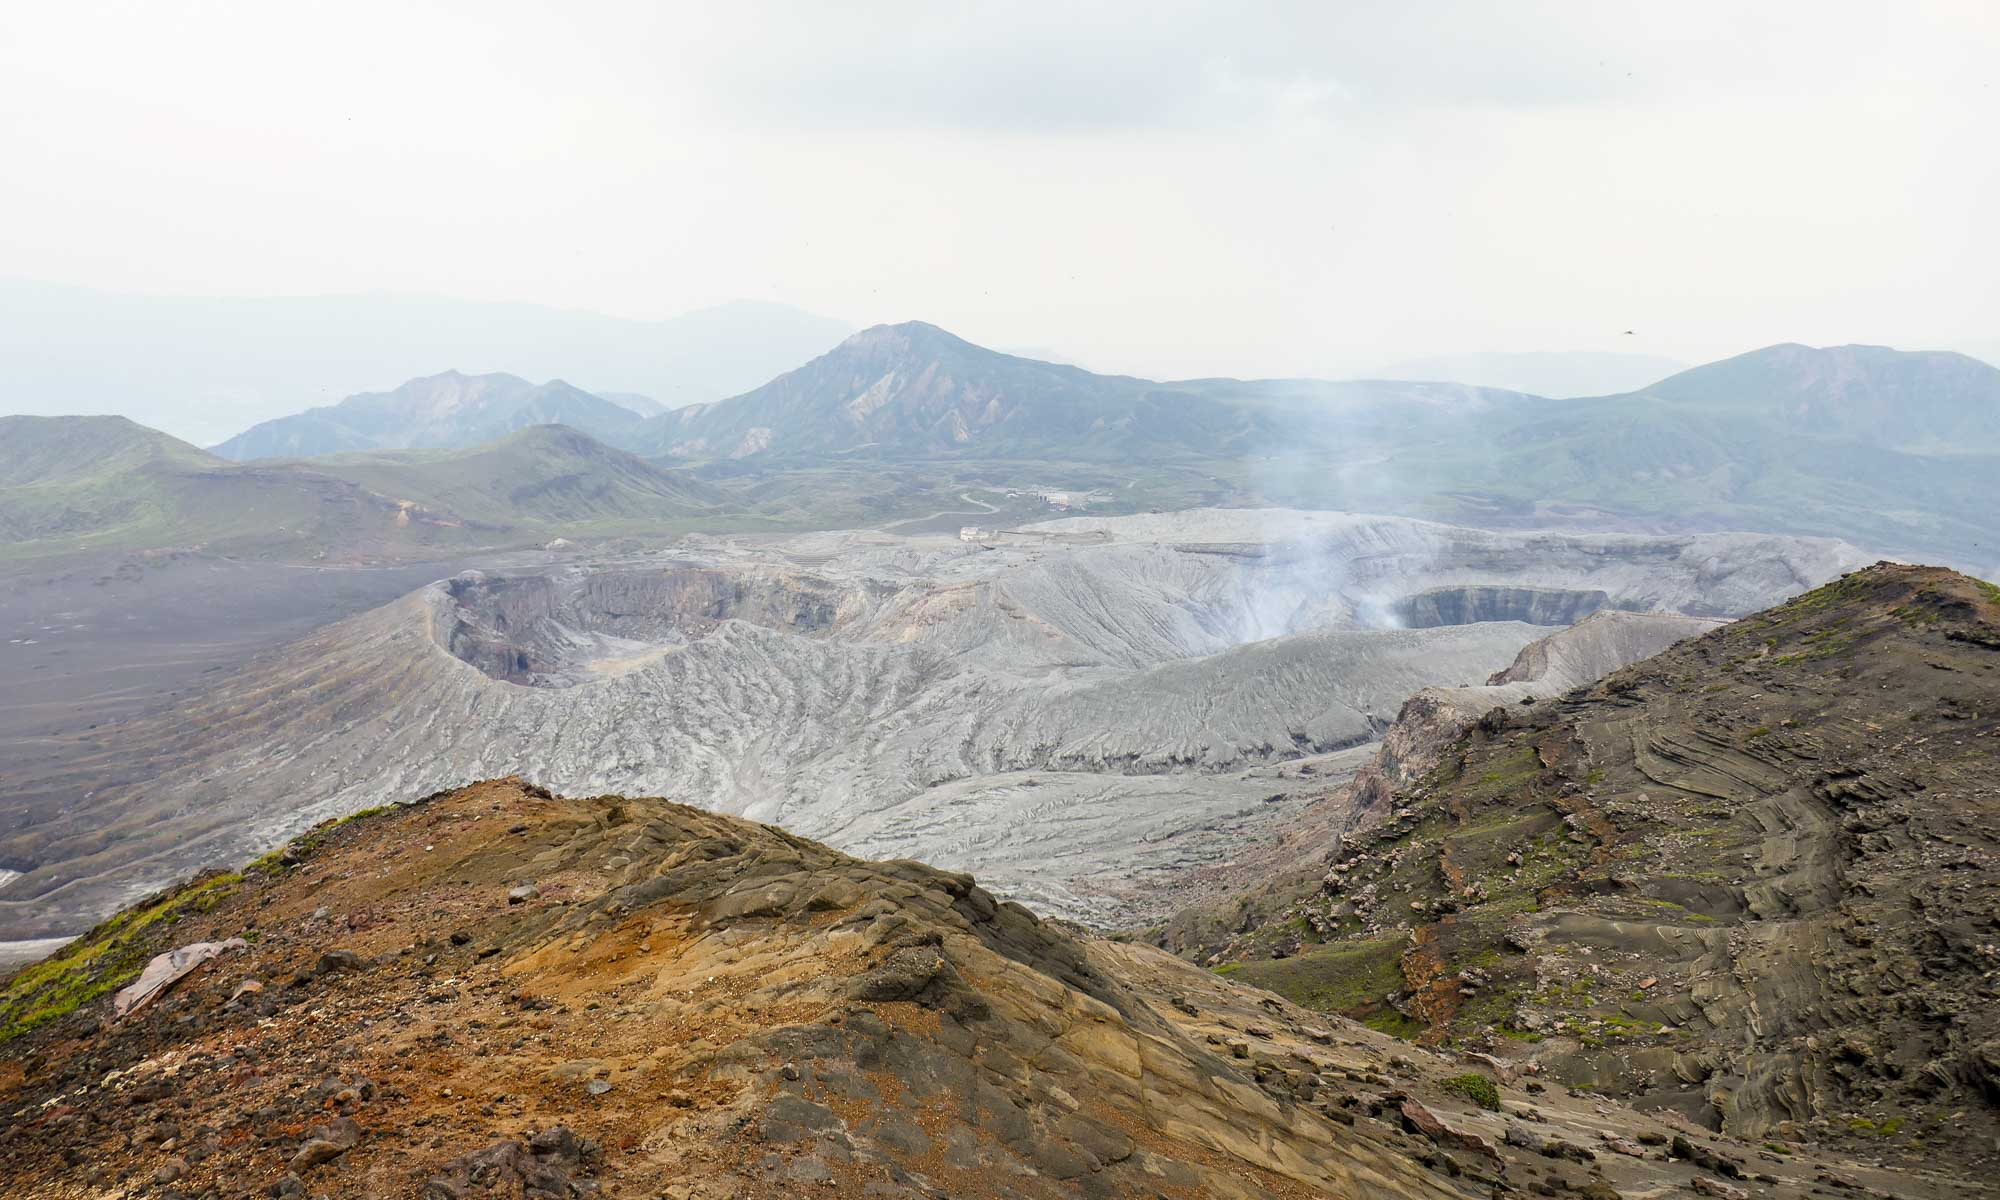 View of the crater from Mount Nakadake